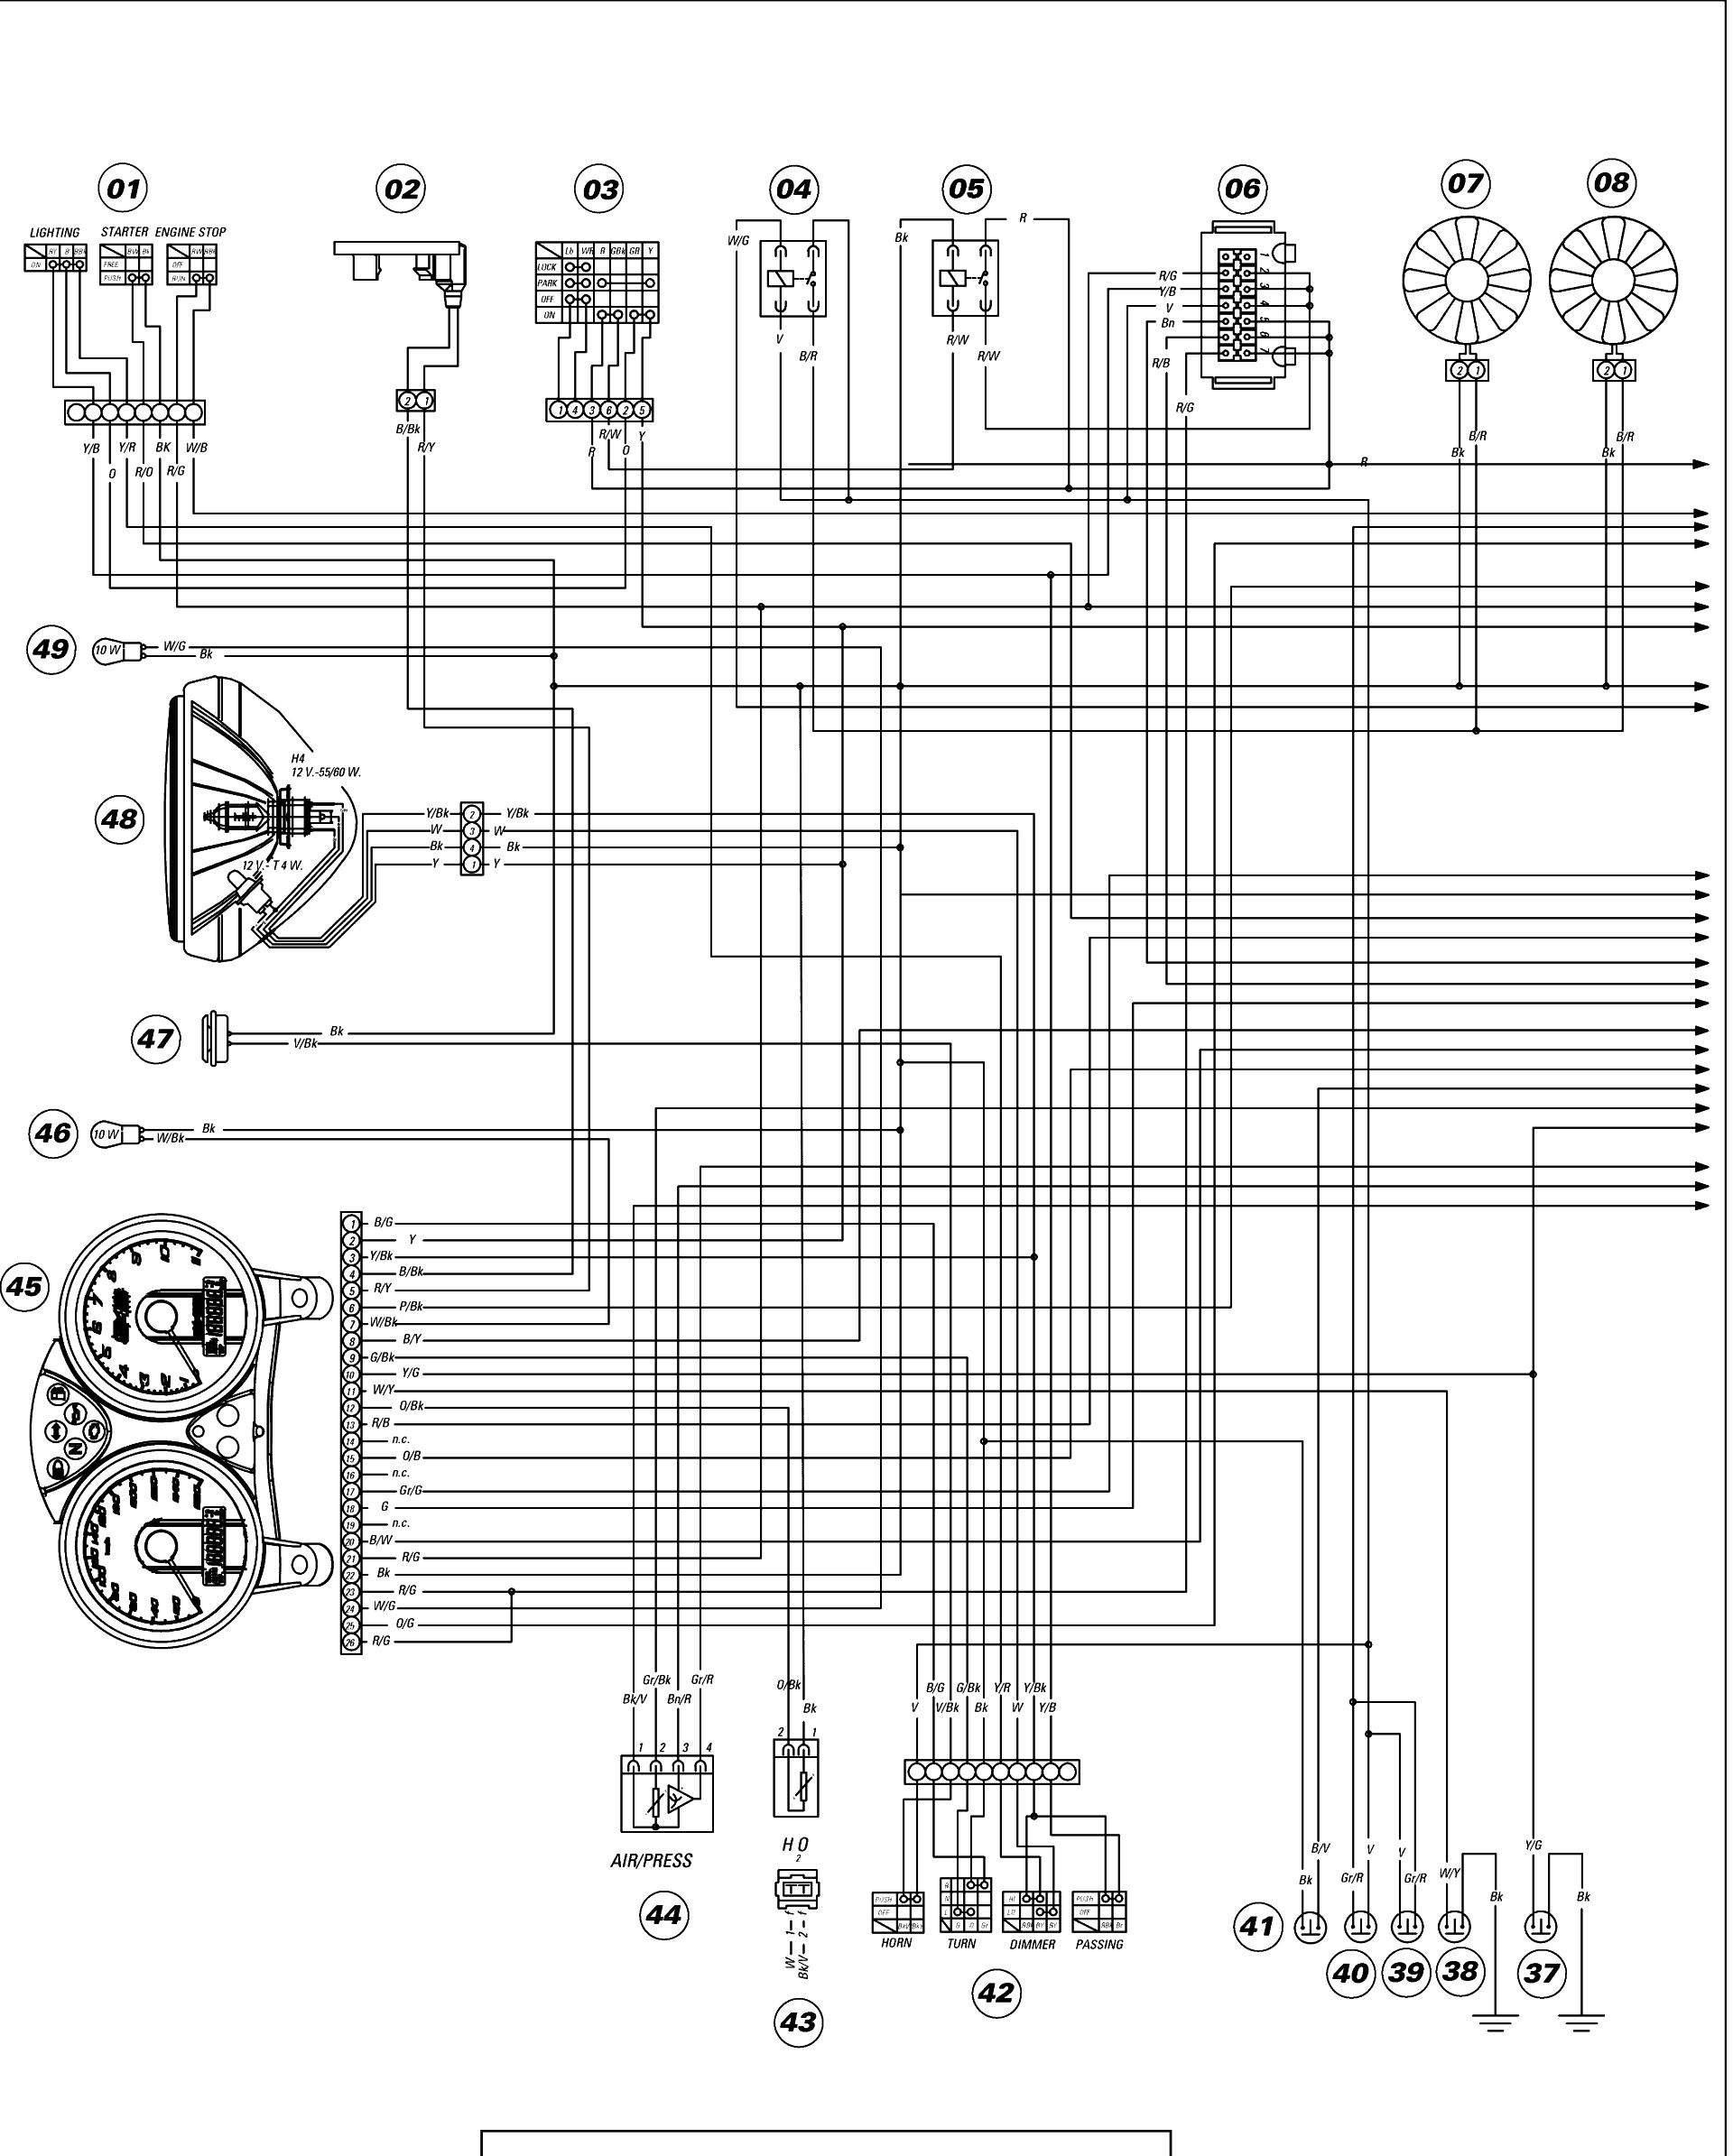 Ducati 796 Wiring Diagram House Symbols For 860 Gt Electrical Images Gallery